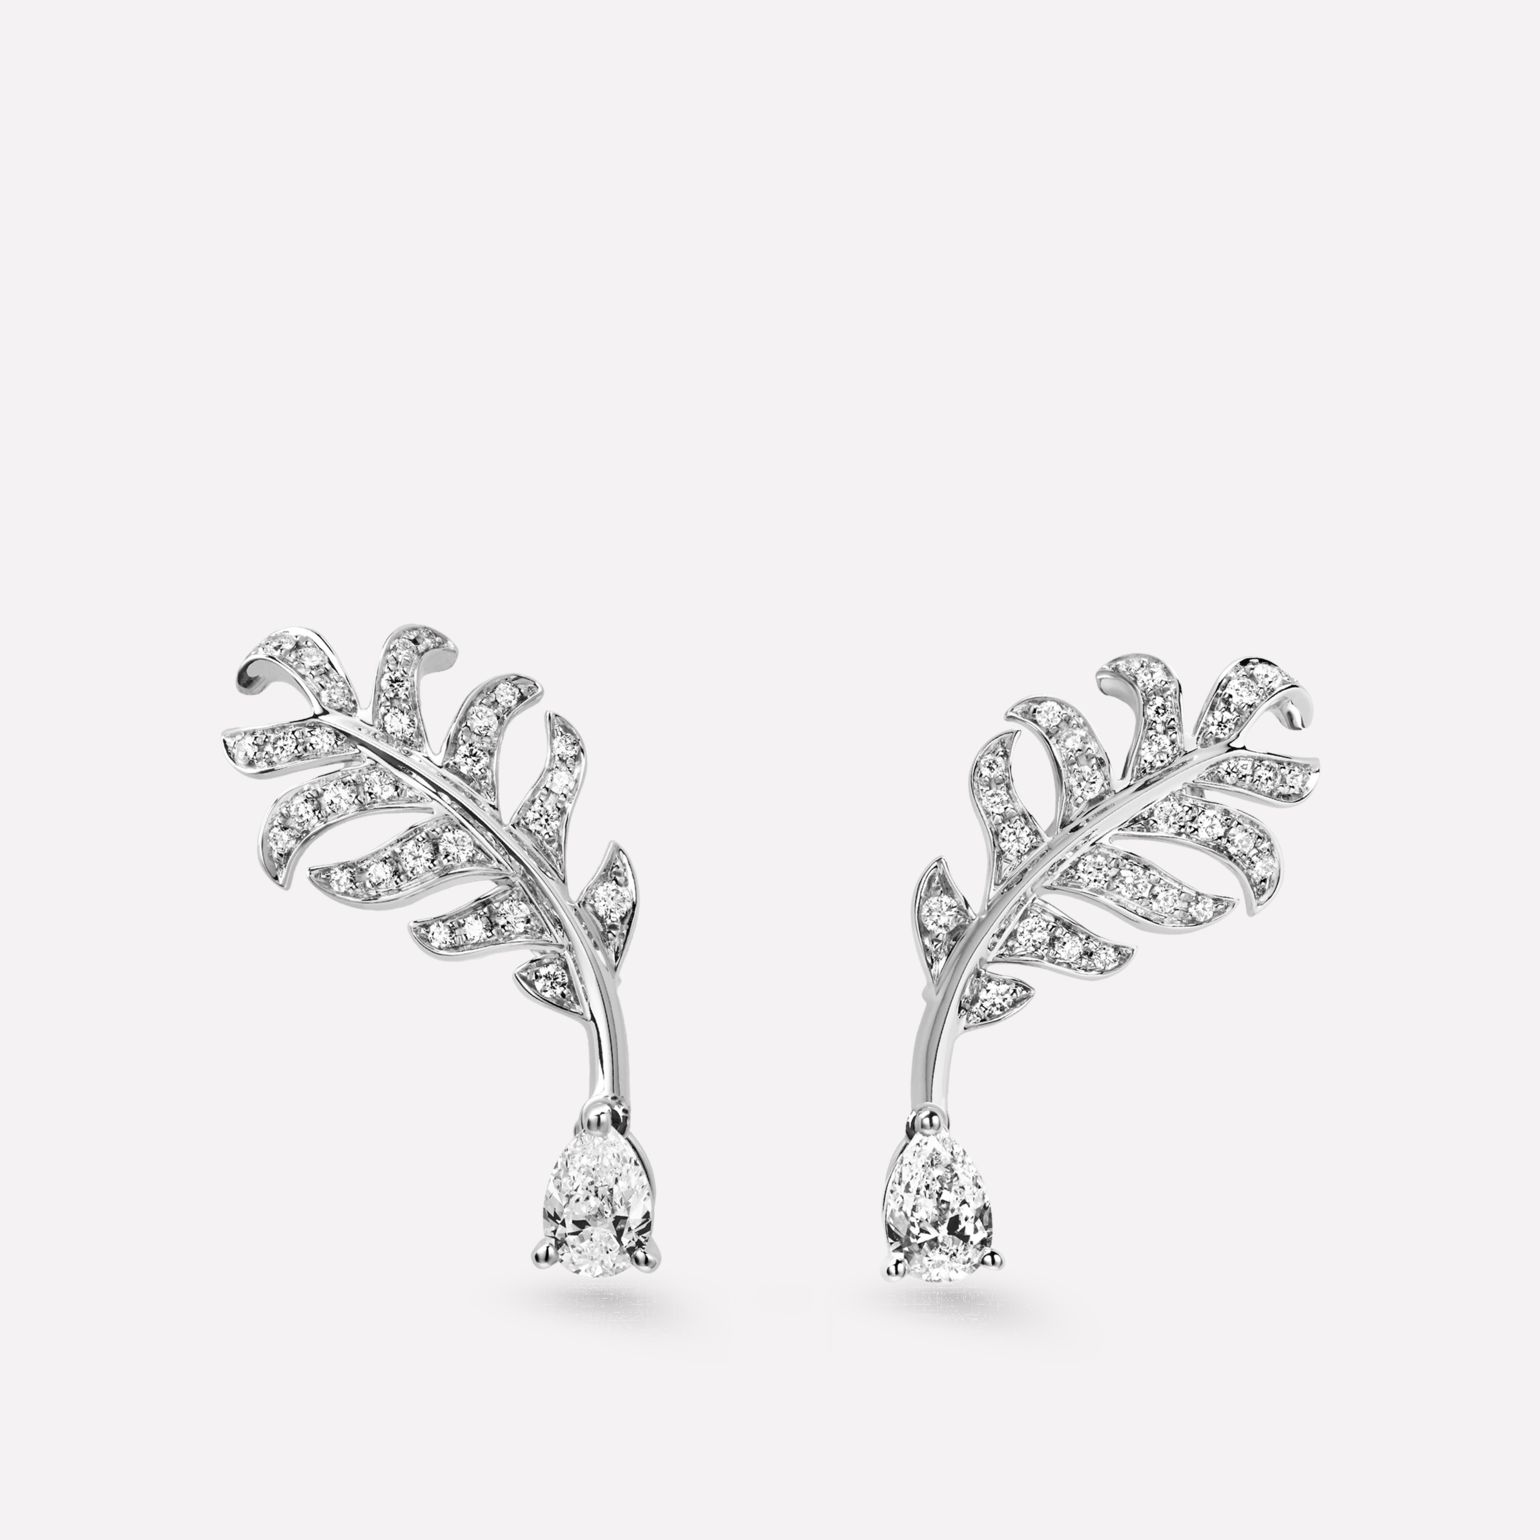 Plume de CHANEL earrings Plume earrings in 18K white gold, diamonds and center diamonds